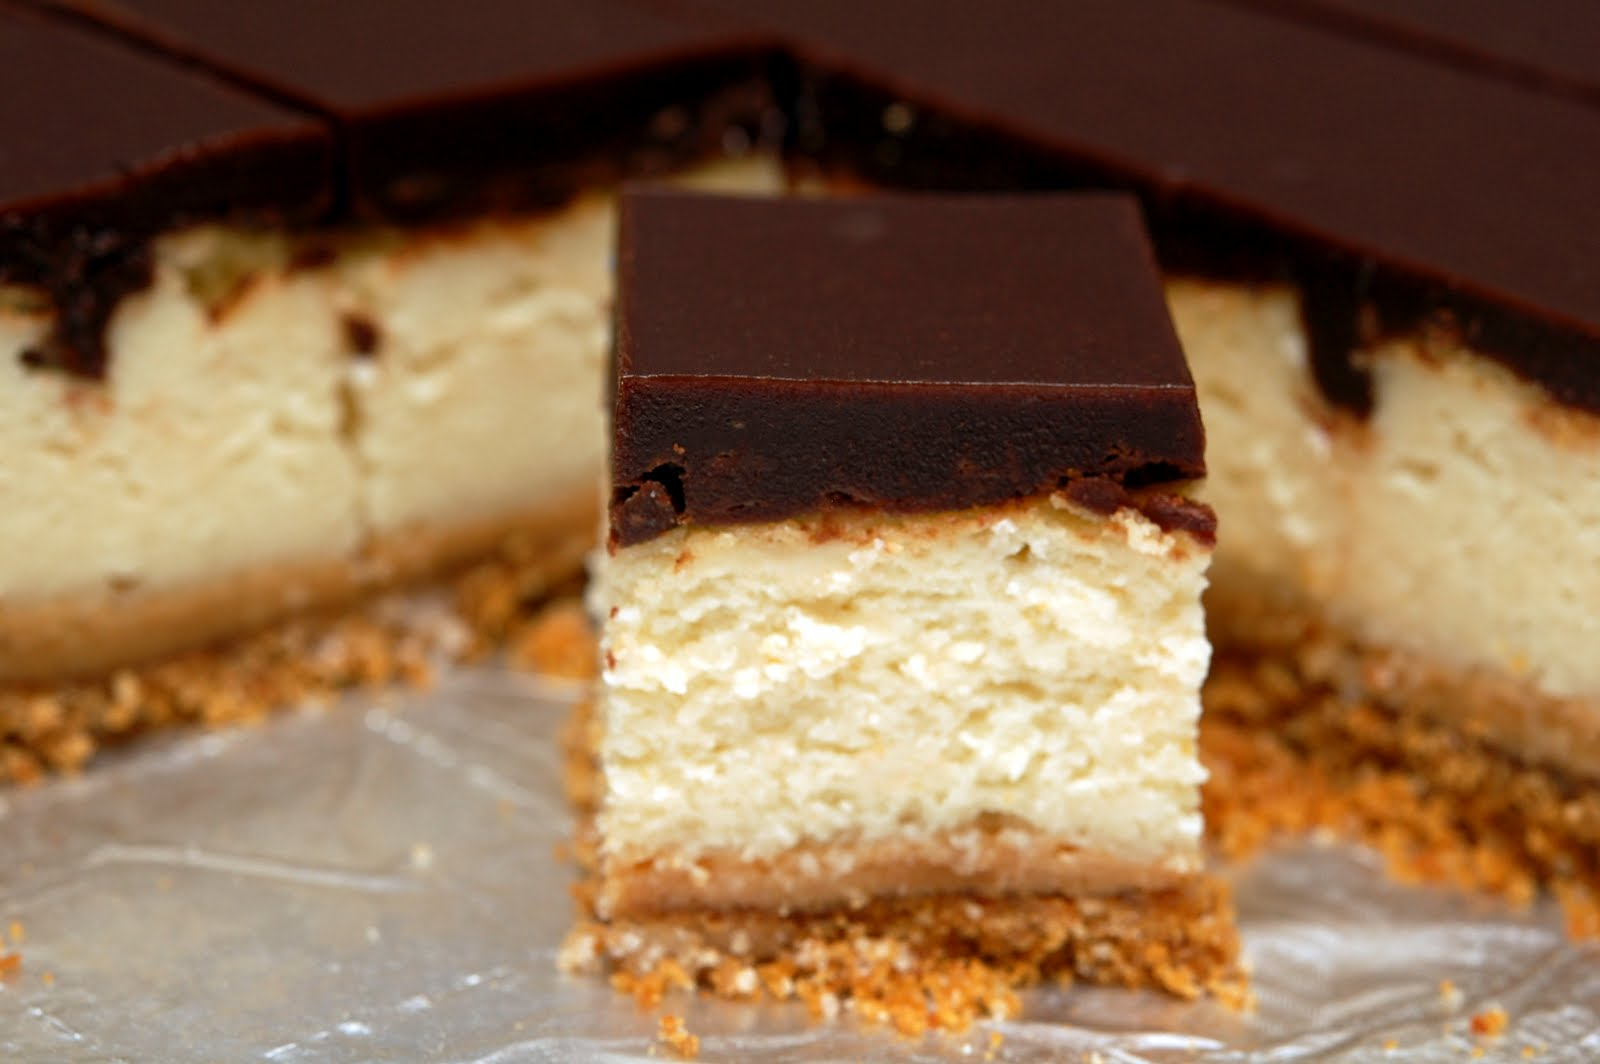 DULCE DE LECHE CHEESECAKE BARS - Hugs and Cookies XOXO